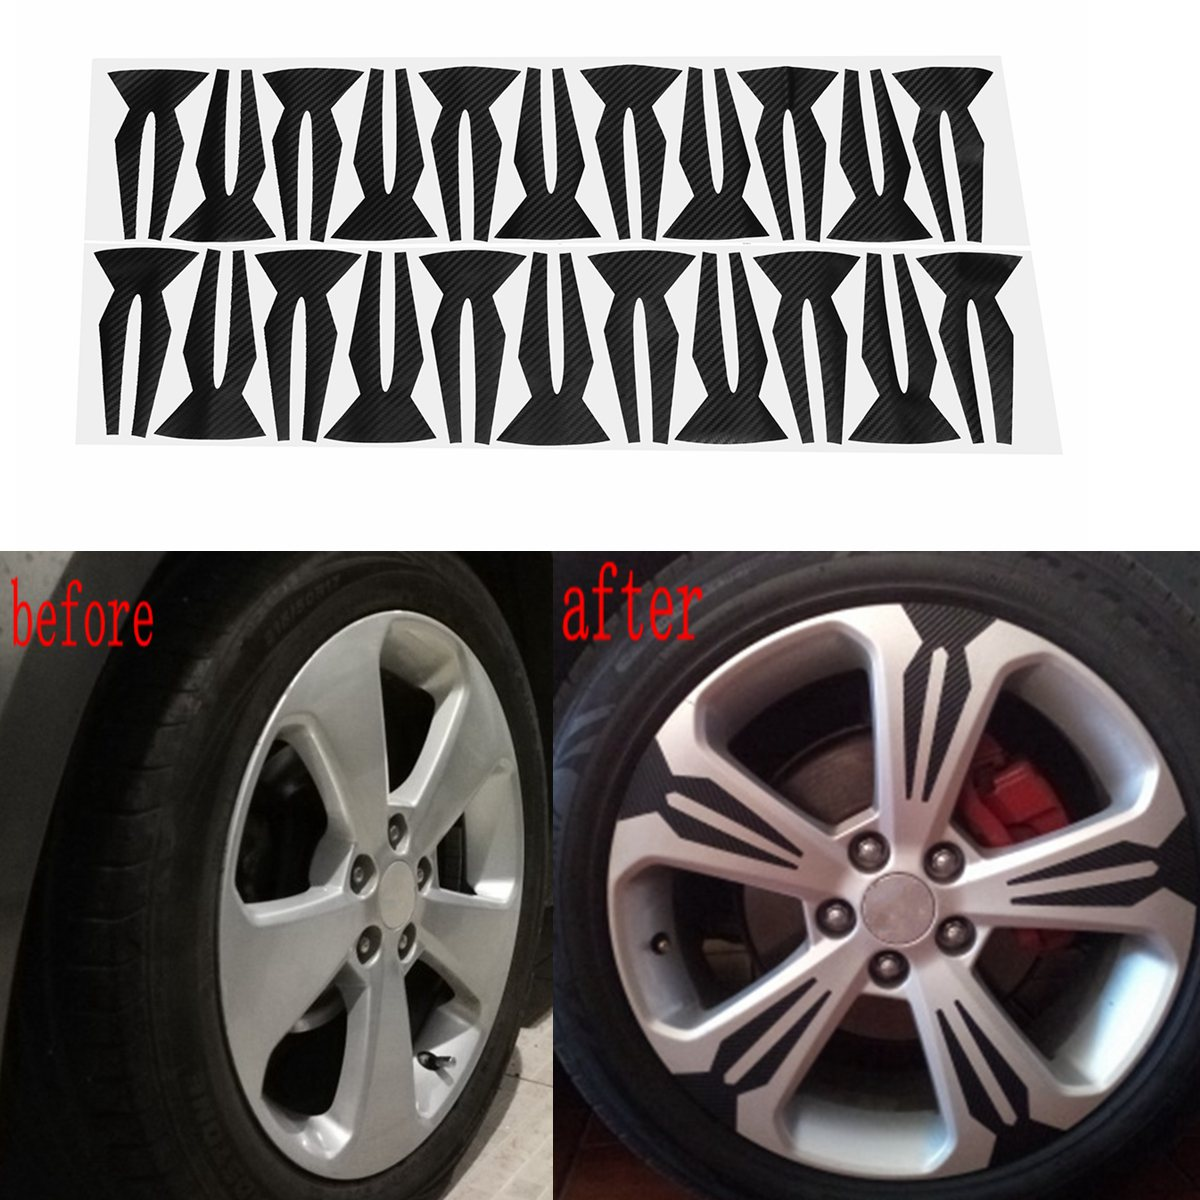 20Pcs/Set 4D Carbon Fiber Car Wheel Tire Hub Stickers Rim Sticker For Chevrolet For Cruze 2009 2010 2011 2012 2013 Car Styling